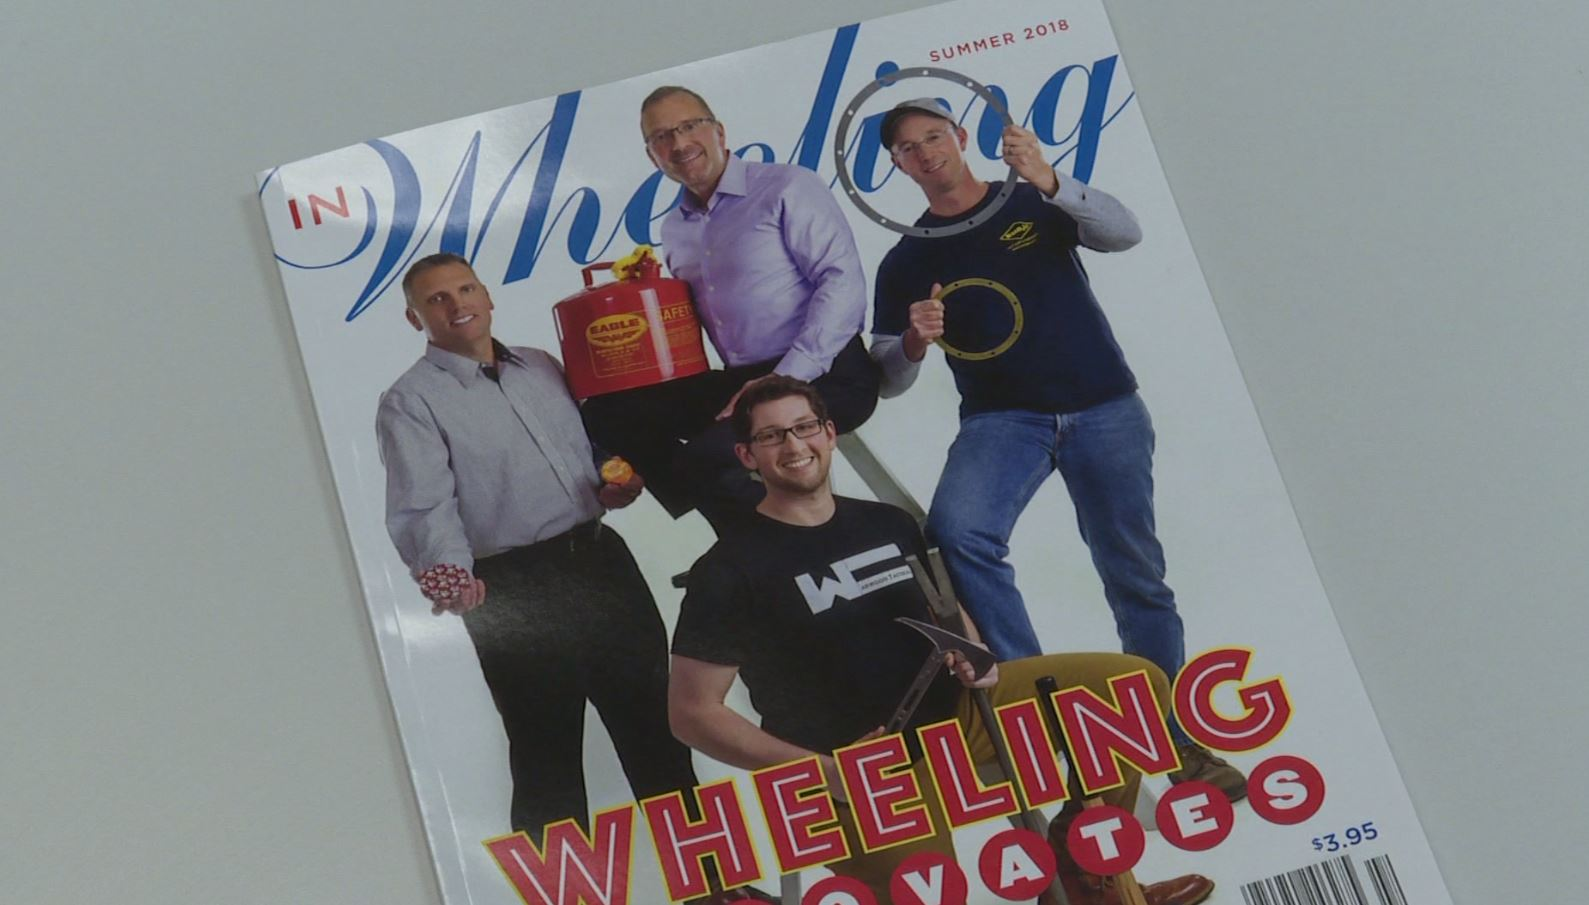 in wheeling magazine_1527023789440.JPG.jpg